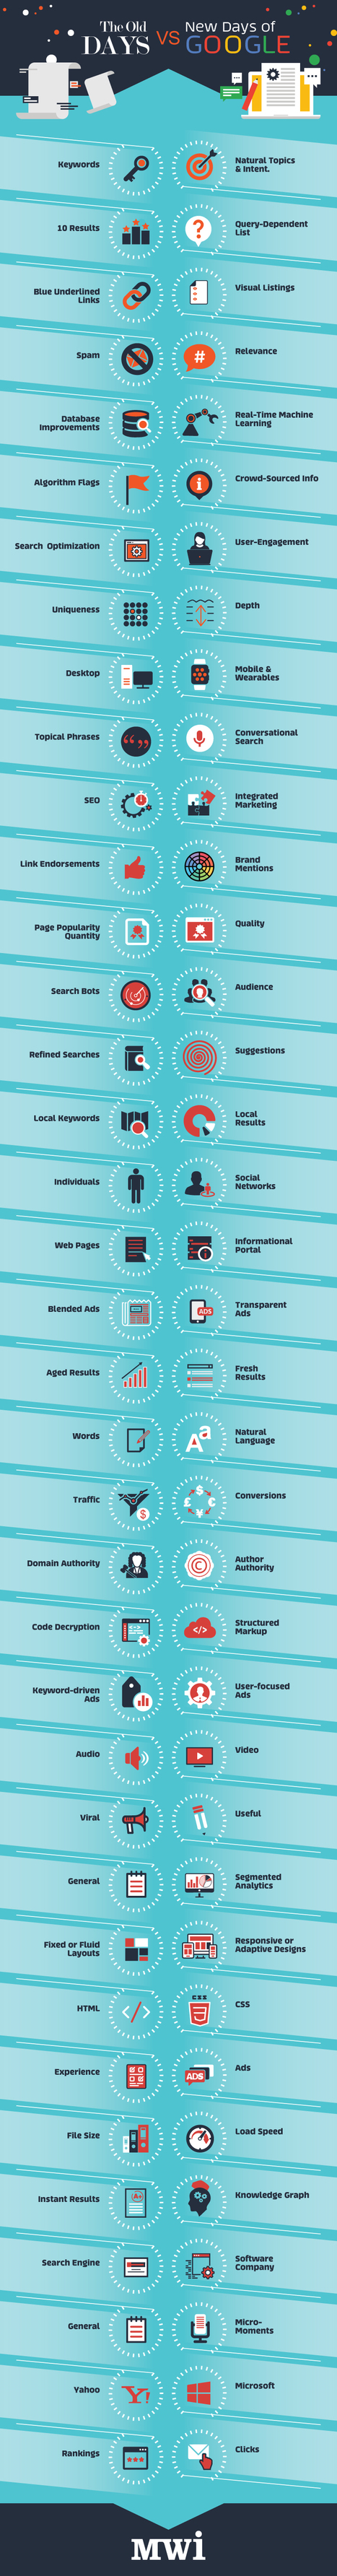 The Old Days VS New Days of Google [Infographic] | Marketing Planning and Strategy | Scoop.it